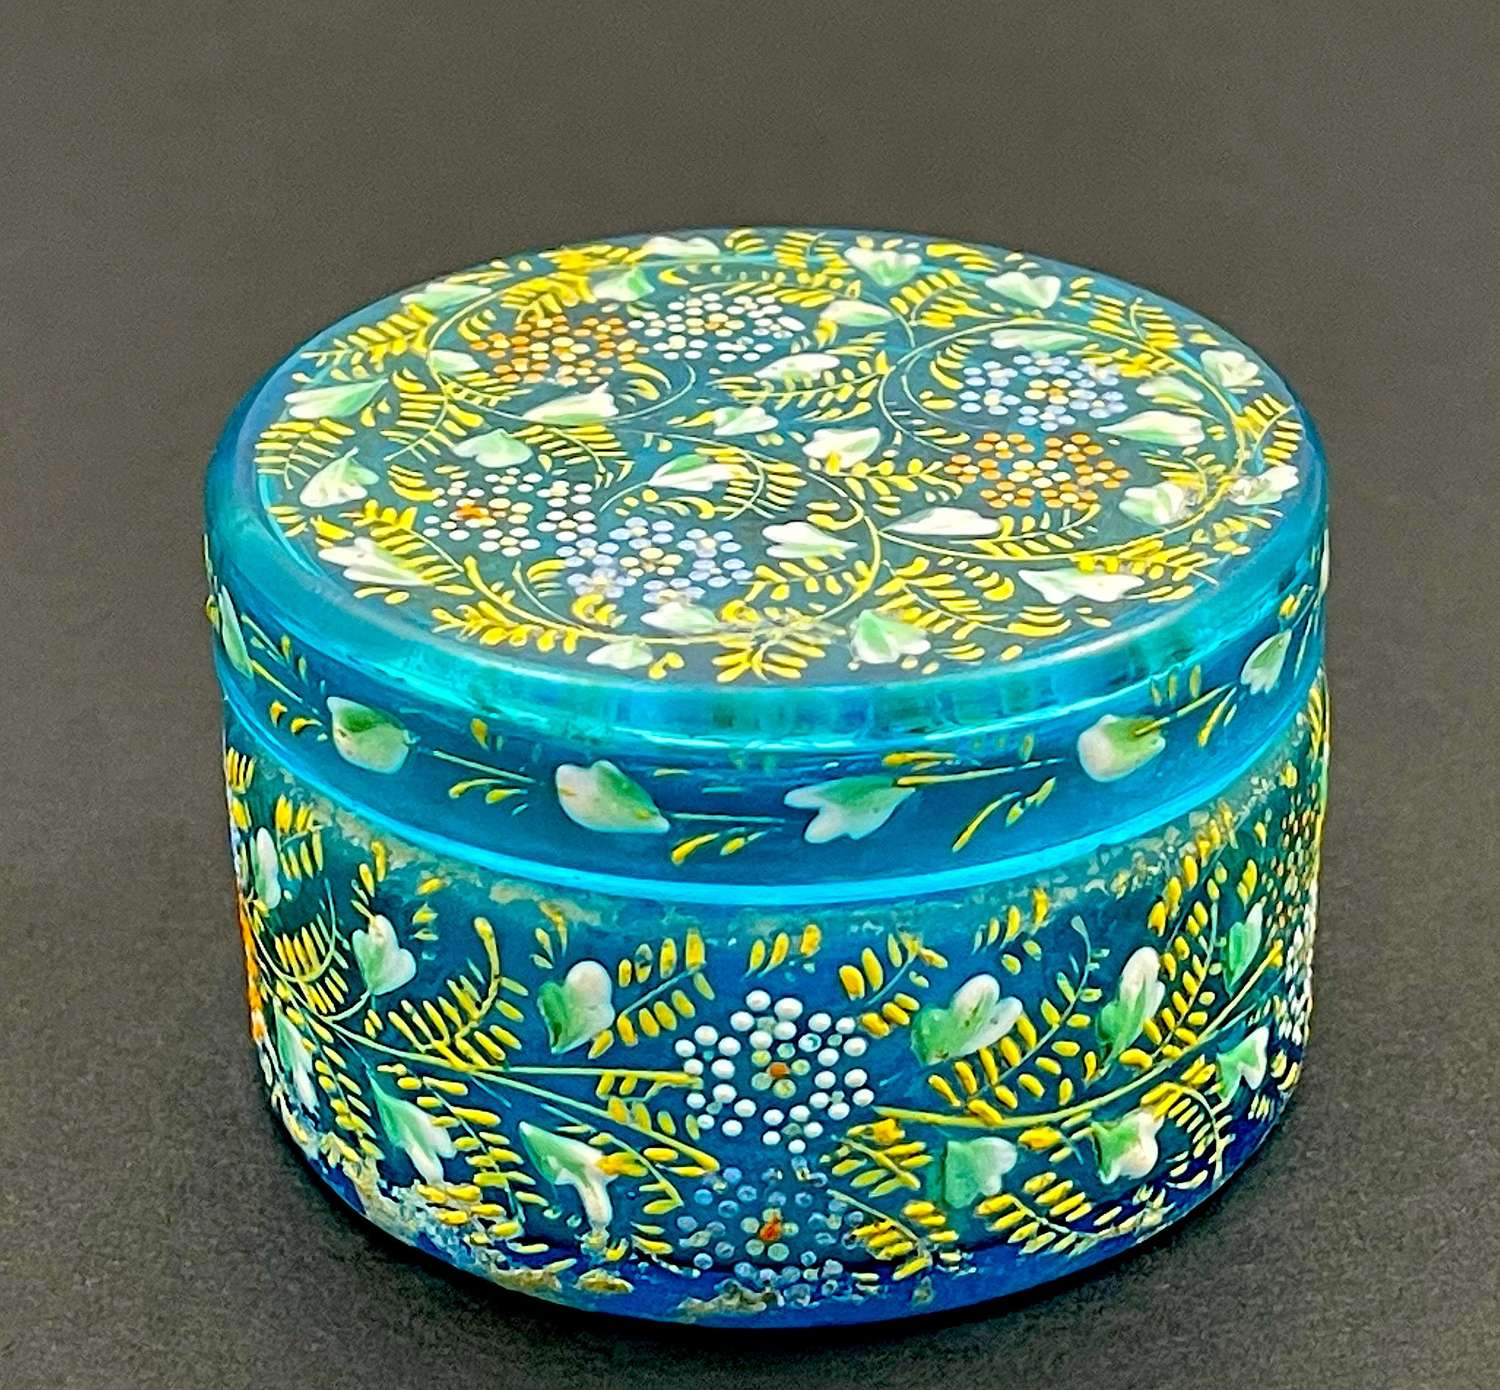 Miniature AntiqueMOSER TurquoiseCasket with Pretty Flowers